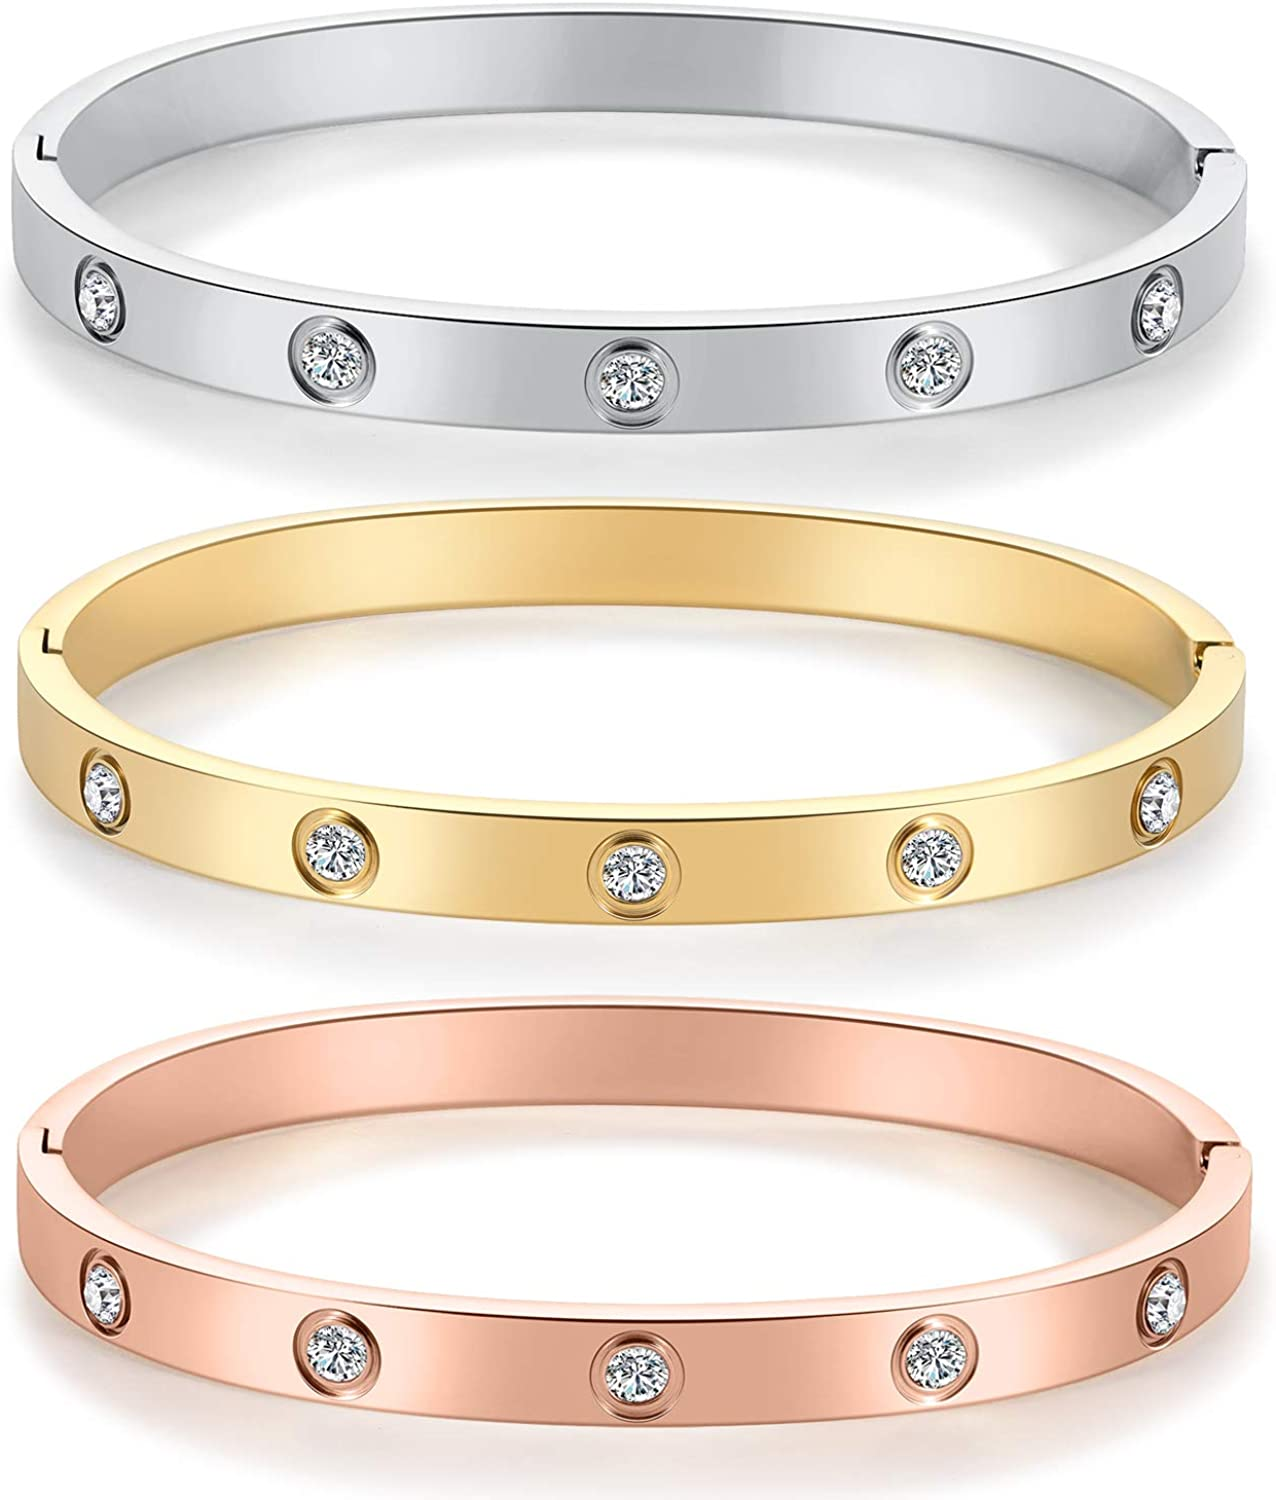 mixed metals 22cm Circumference Silver bangle with gold open heart gift for her